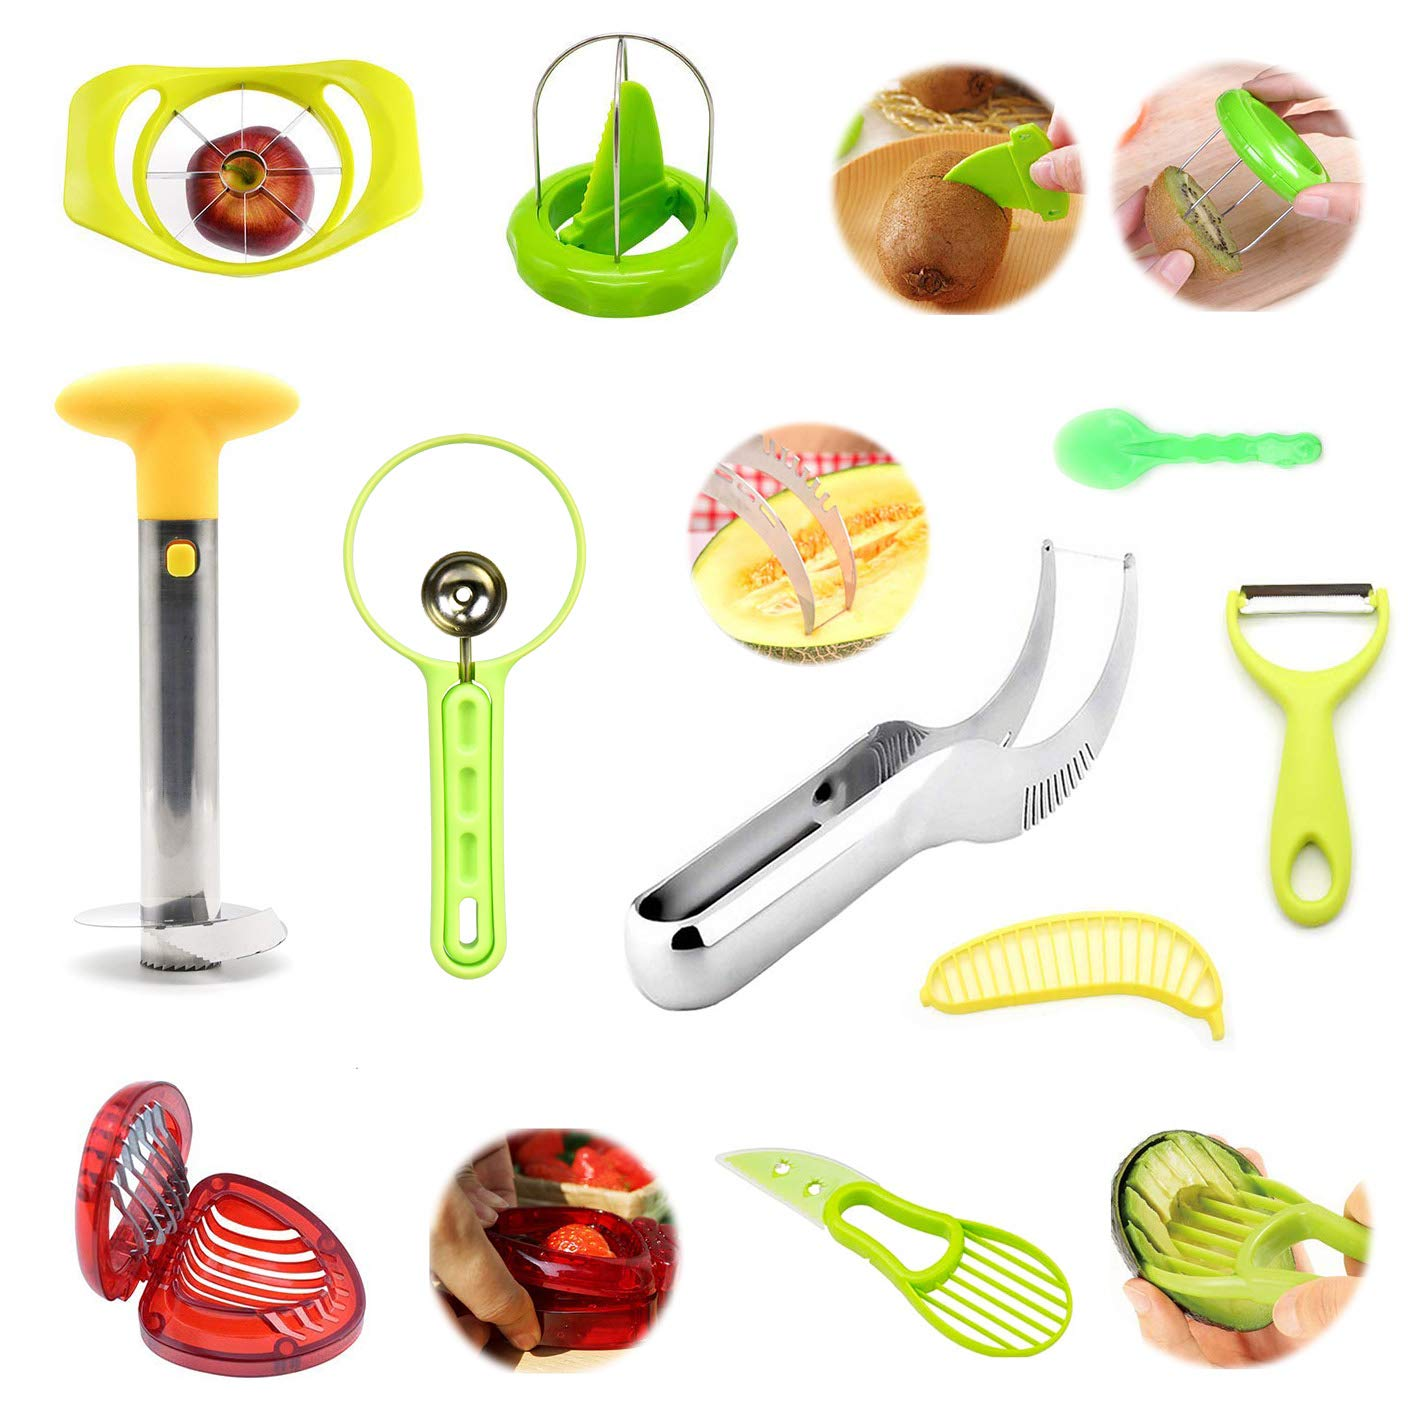 Fruit Slicer Peeler, tongtu Stainless Steel Slicer - 10pcs with Pineapple  Corer, Avocado Knife Strawberry Watermelon Banana Slicer, Cantaloupe Pawpaw